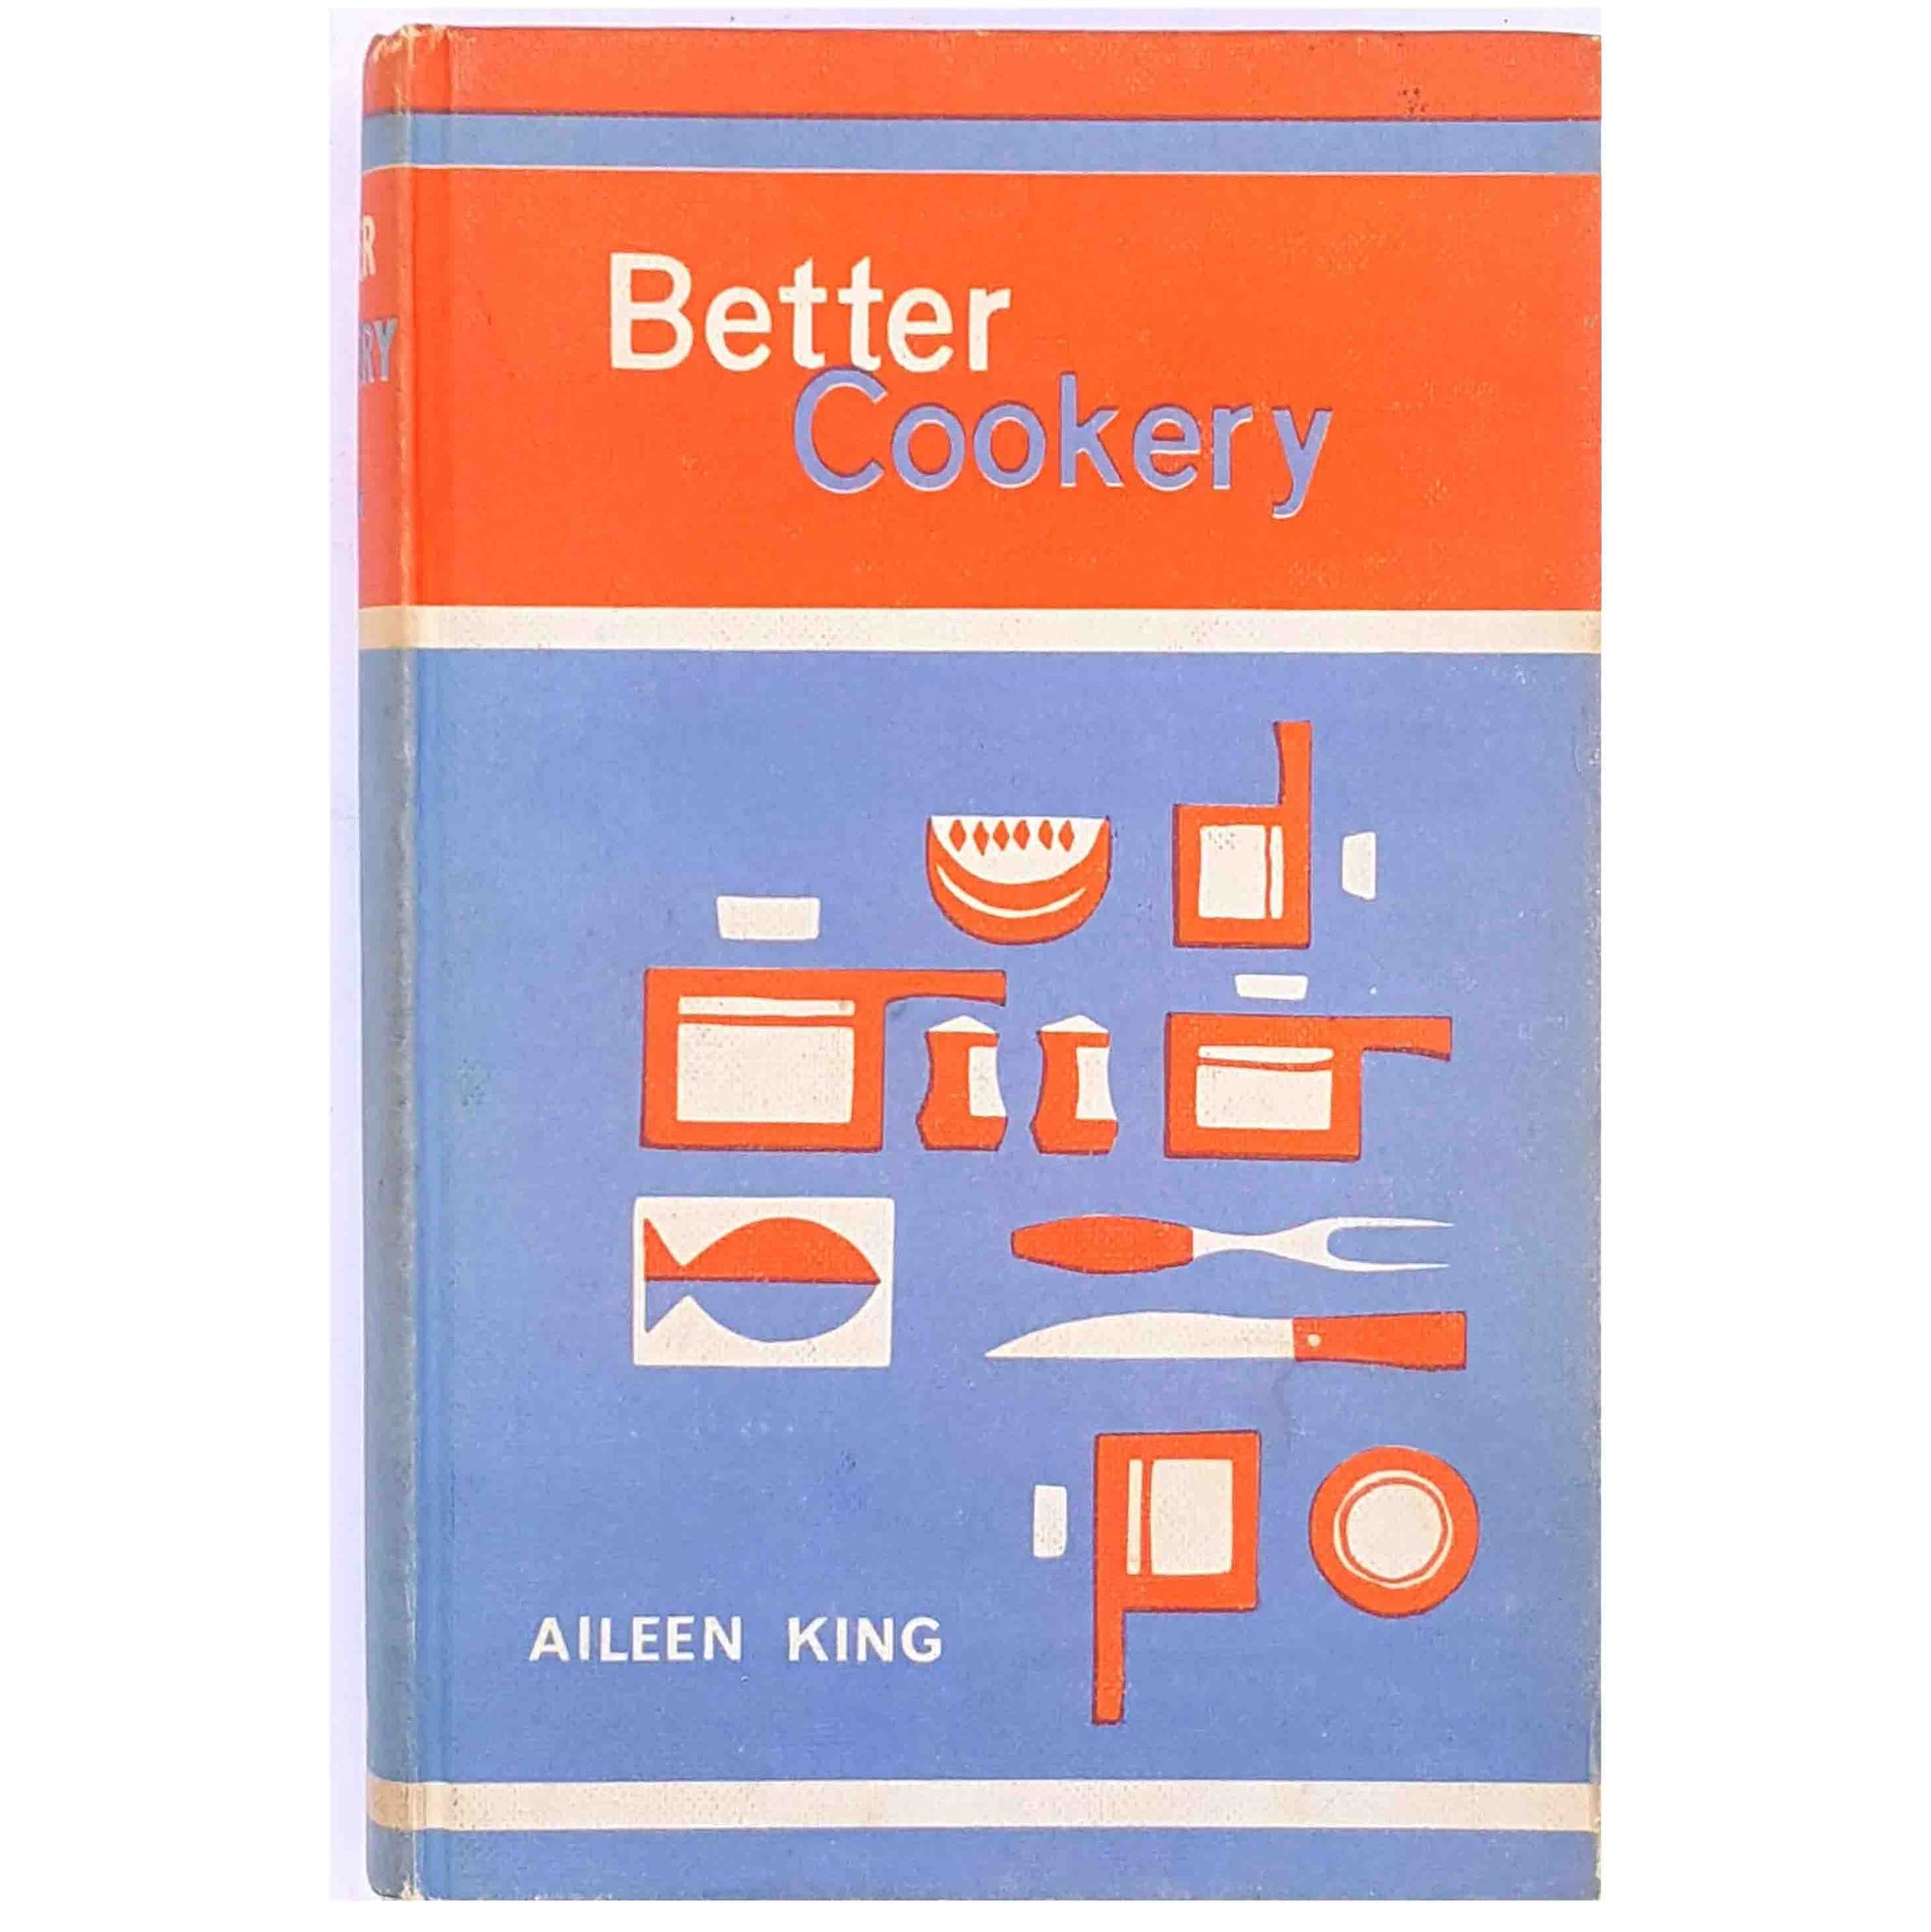 Better Cookery by Aileen King 1964